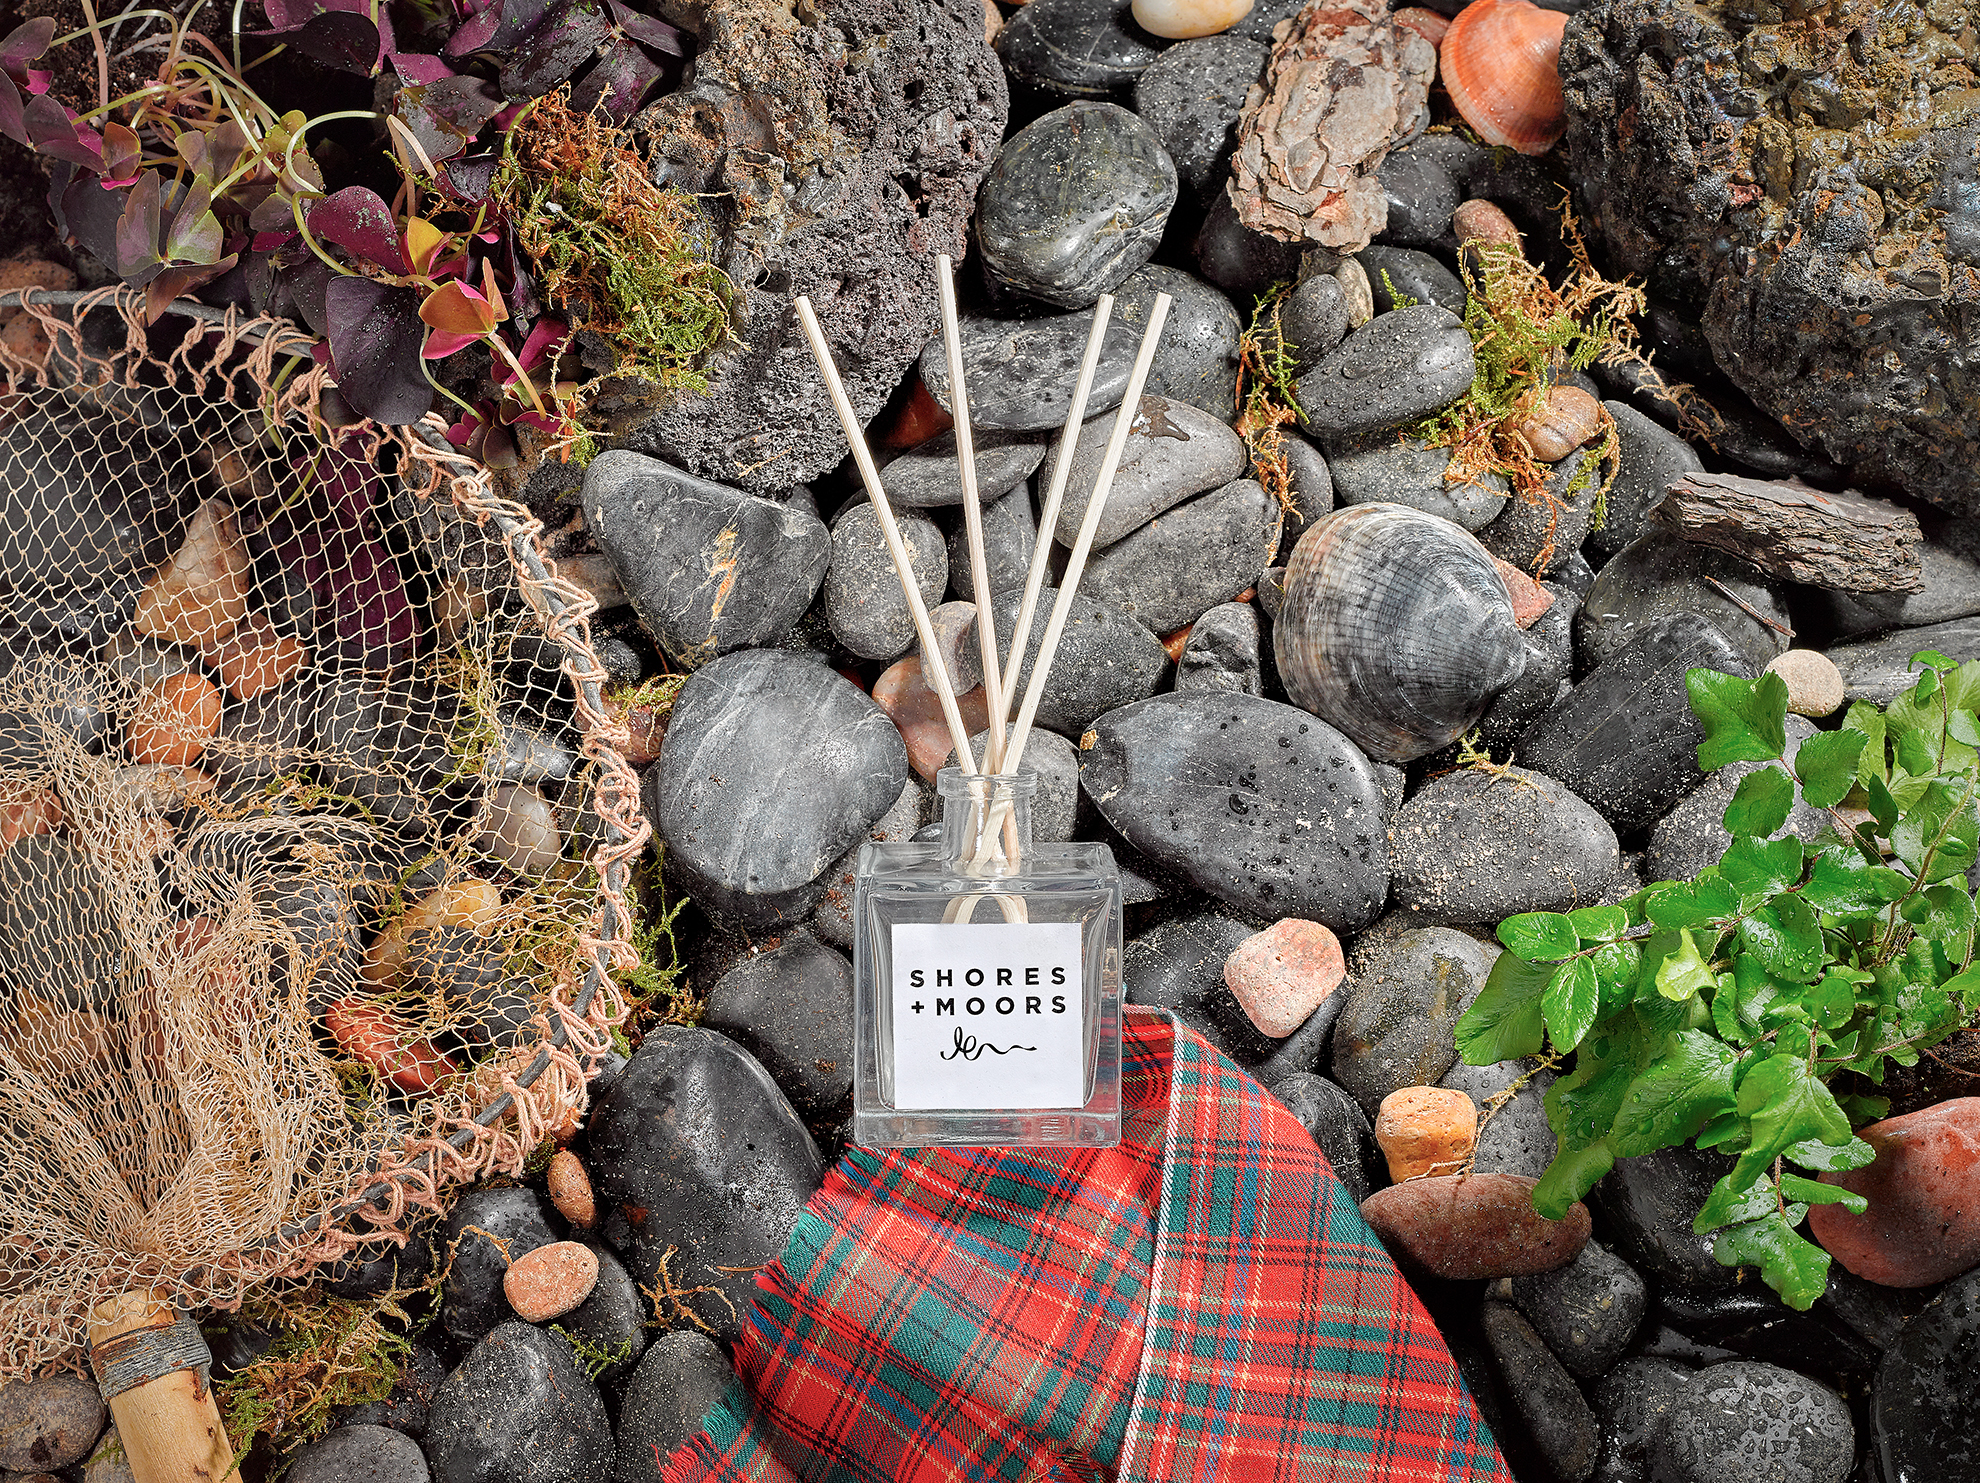 Scottish costal still life scene with tartan patten fishing nets pebbles and sea grasses. Lifestyle product photography from chris howlett